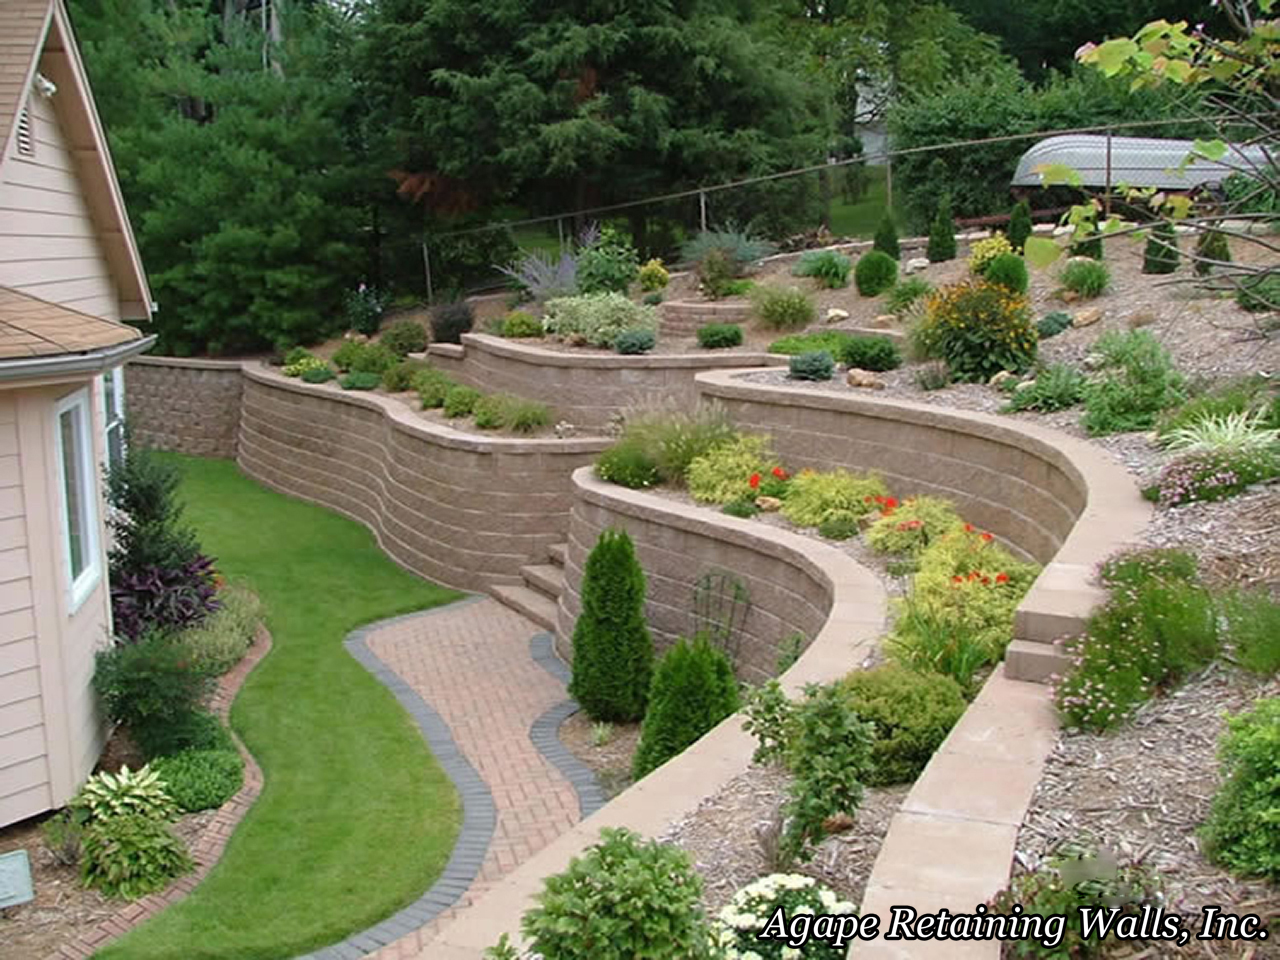 Agape retaining walls inc terrace photo album 2 for Terrace landscape design